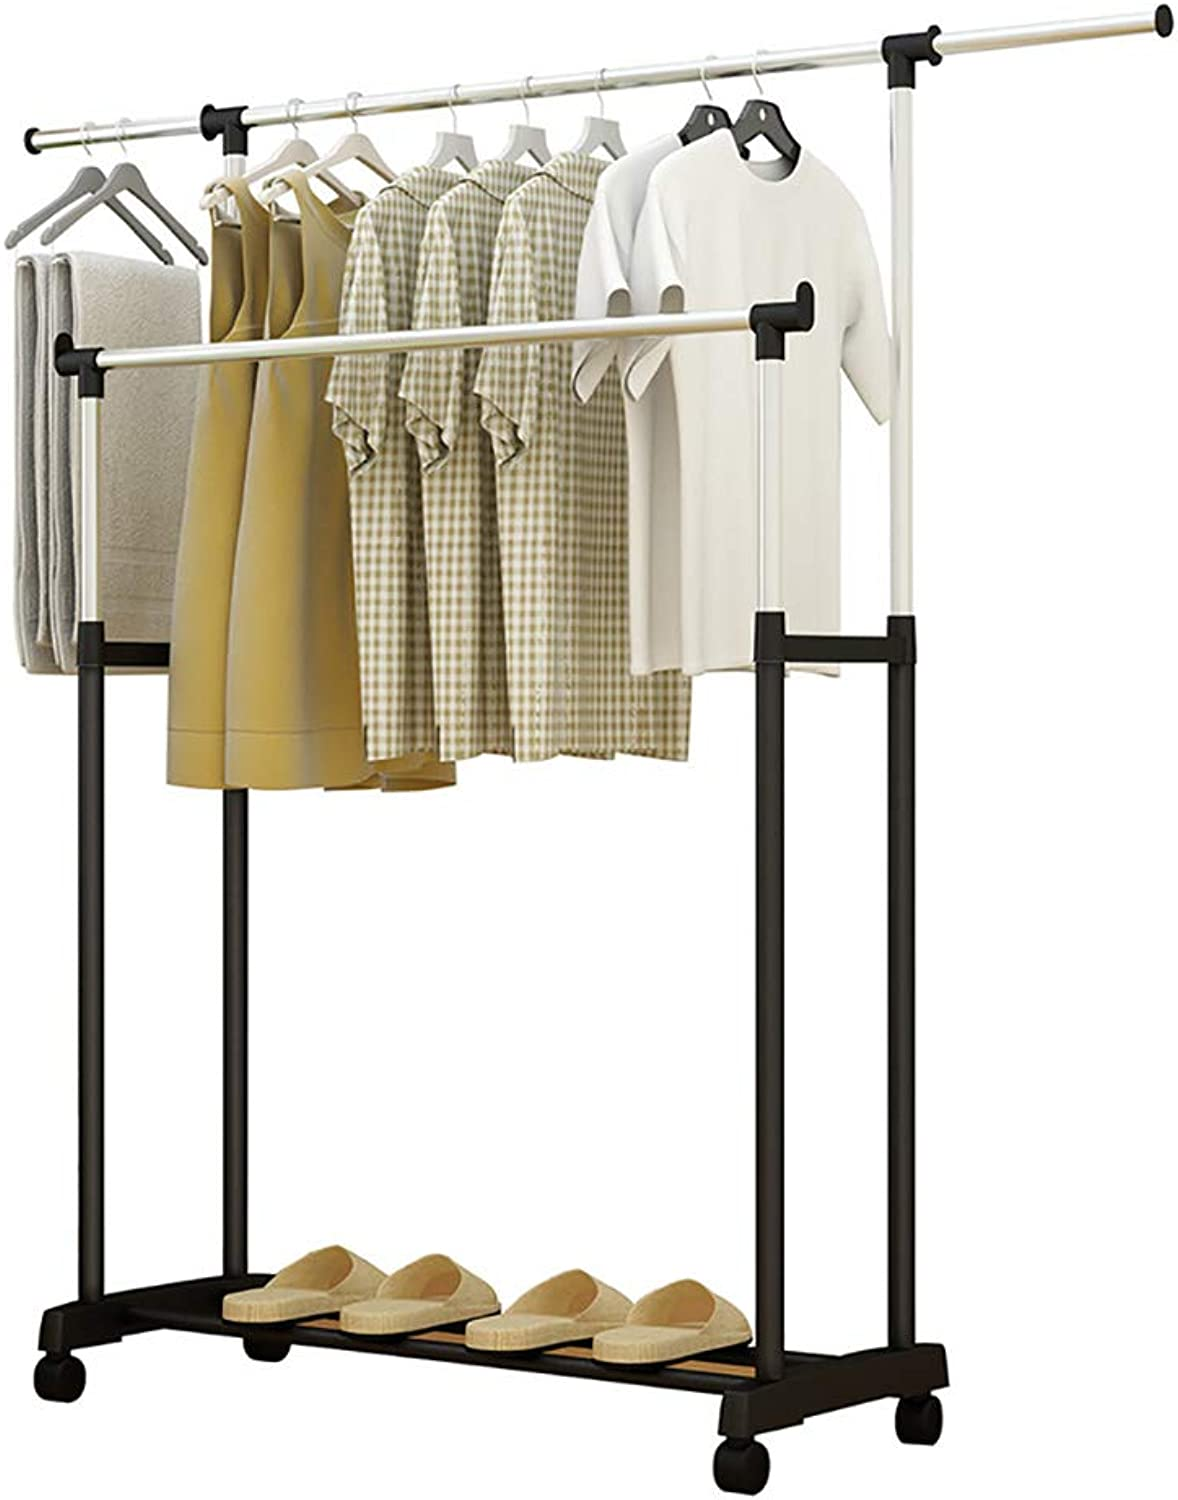 Floor-Standing Coat Rack Double Pole Simple Clothes Hanger Pulley it can Move Suitable for Bedroom Living Room Balcony